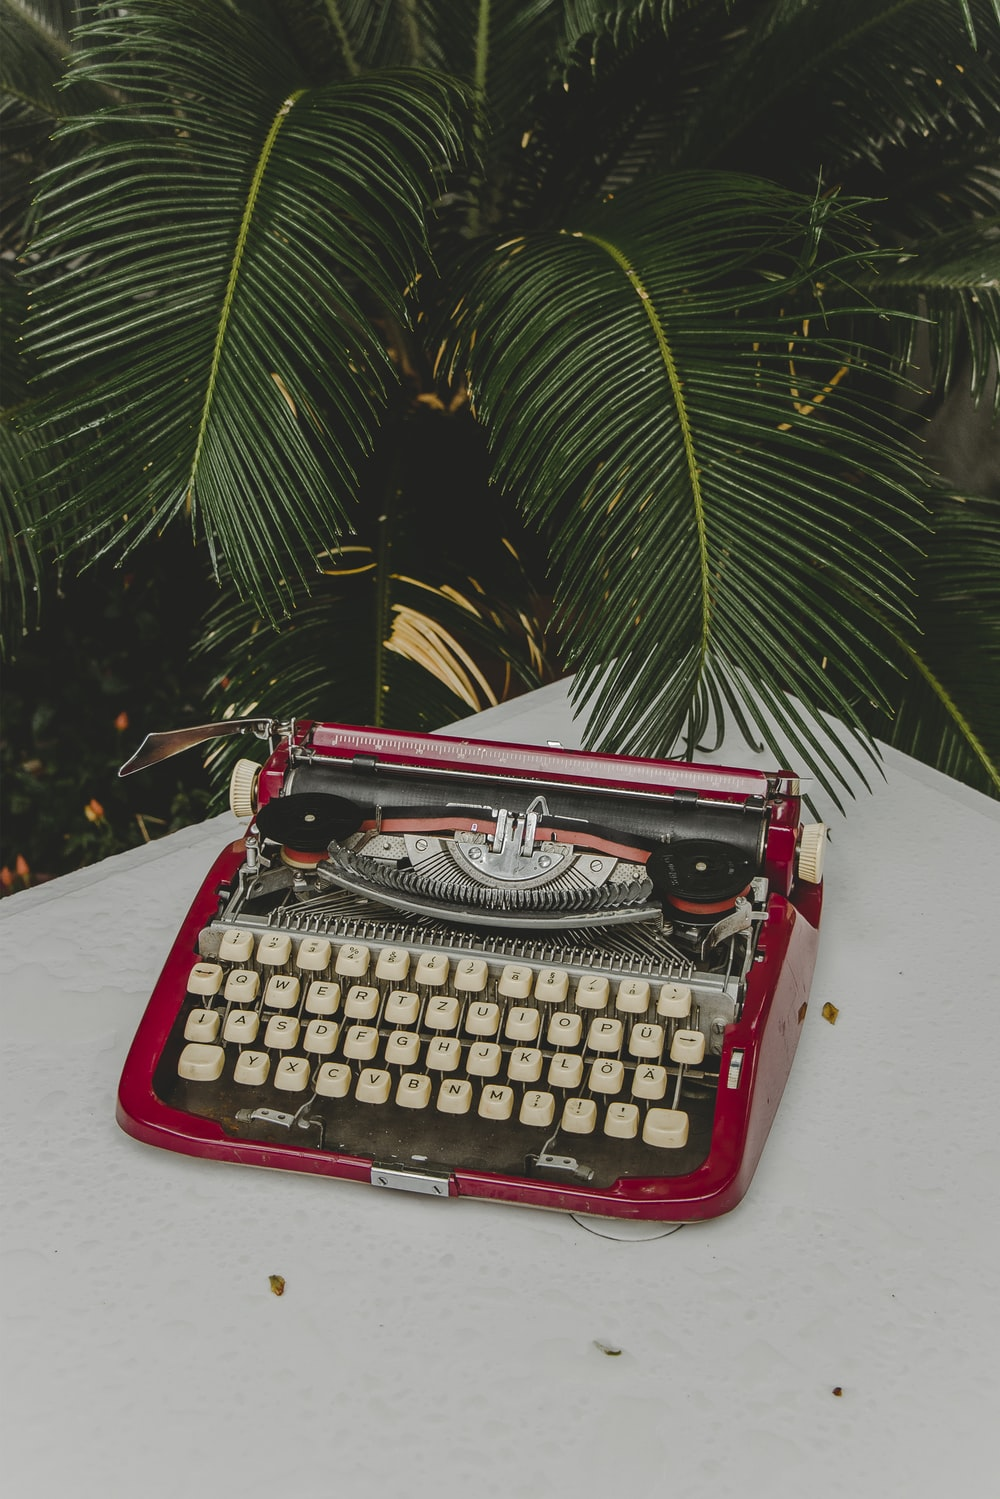 red and gray typewriter